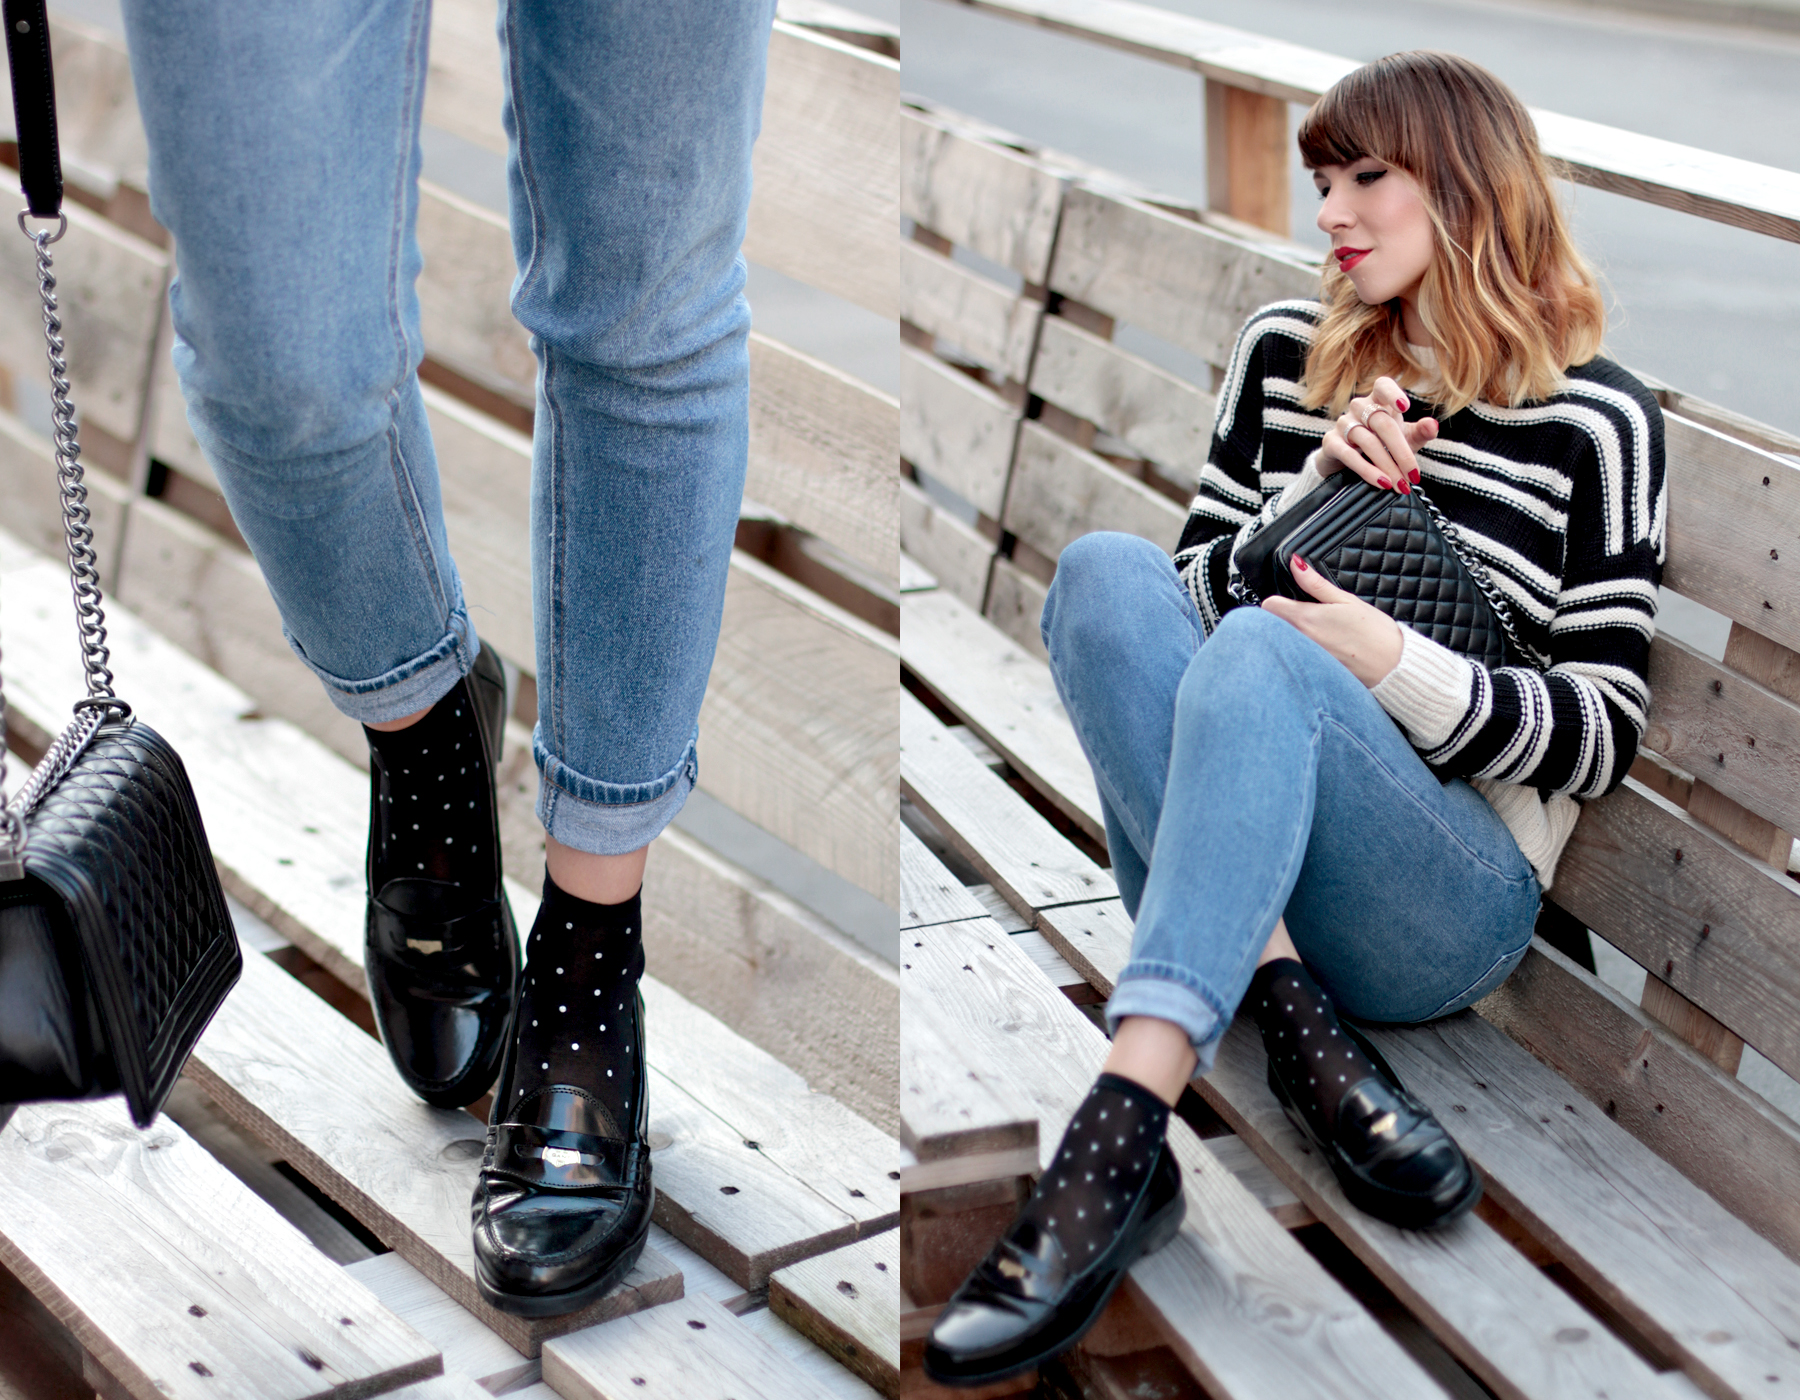 gant penny loafers h&m striped knit breton bretagne parisian style chanel le boy bag tailor swift style cute girl ricarda schernus fashionblogger cats & dogs blog5